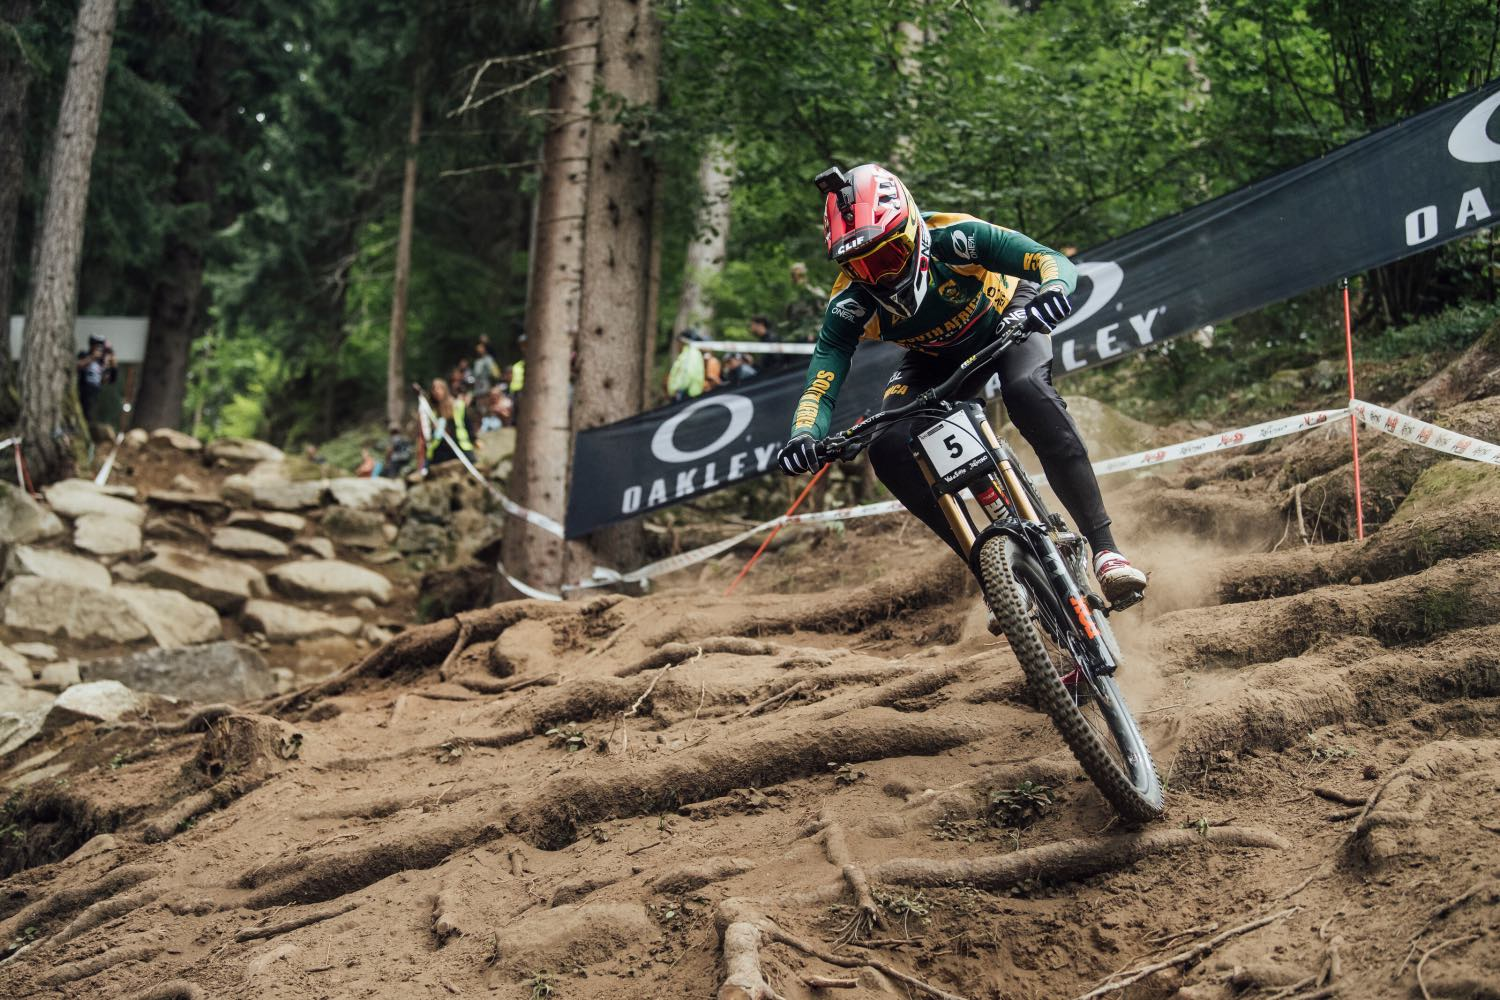 Greg Minnaar competing at the 2021 UCI Downhill MTB World Championships and winning his fourth title.